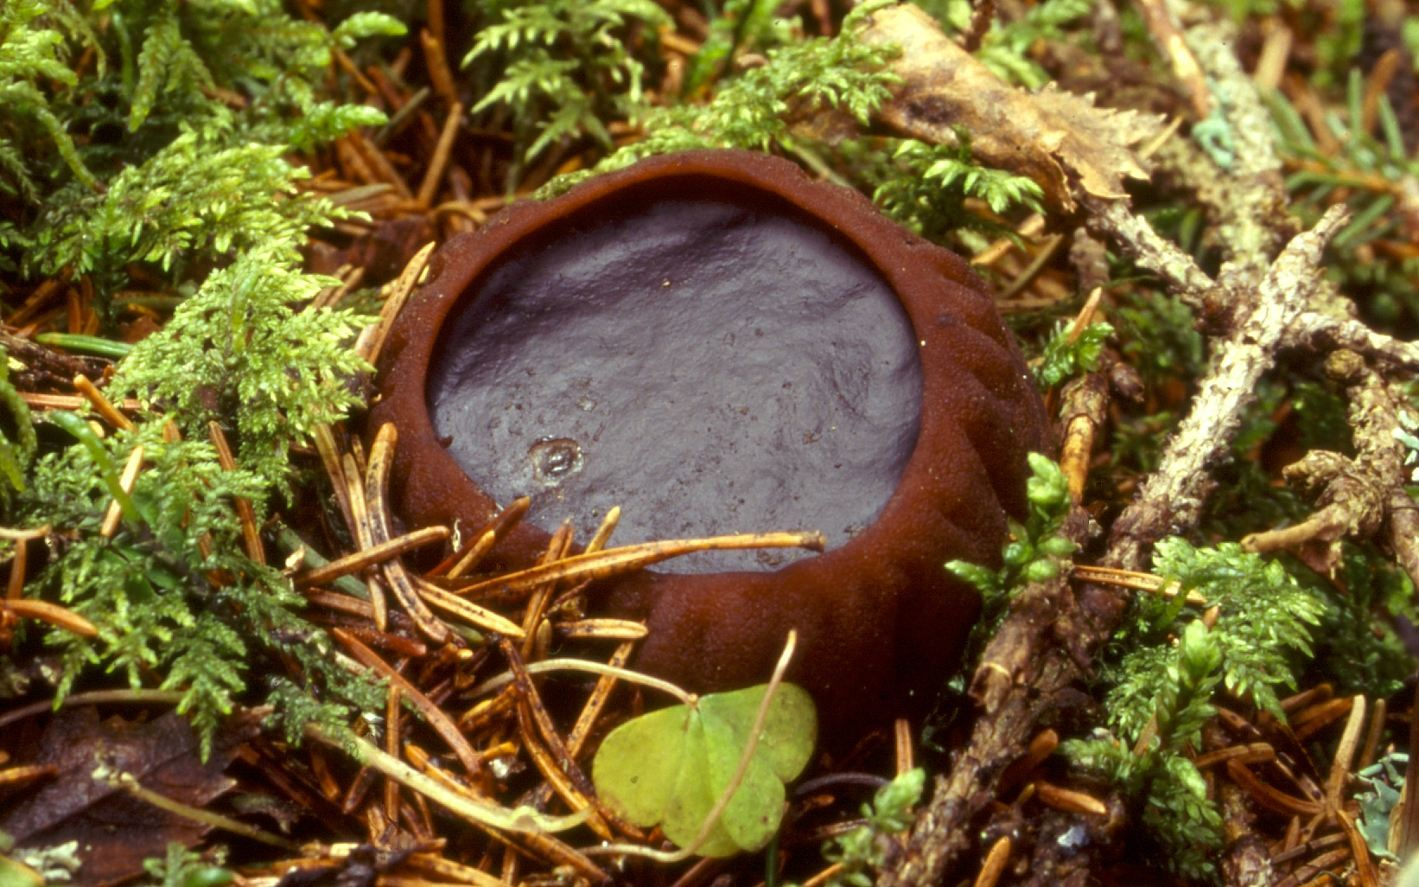 Image of Charred-Pancake Cup